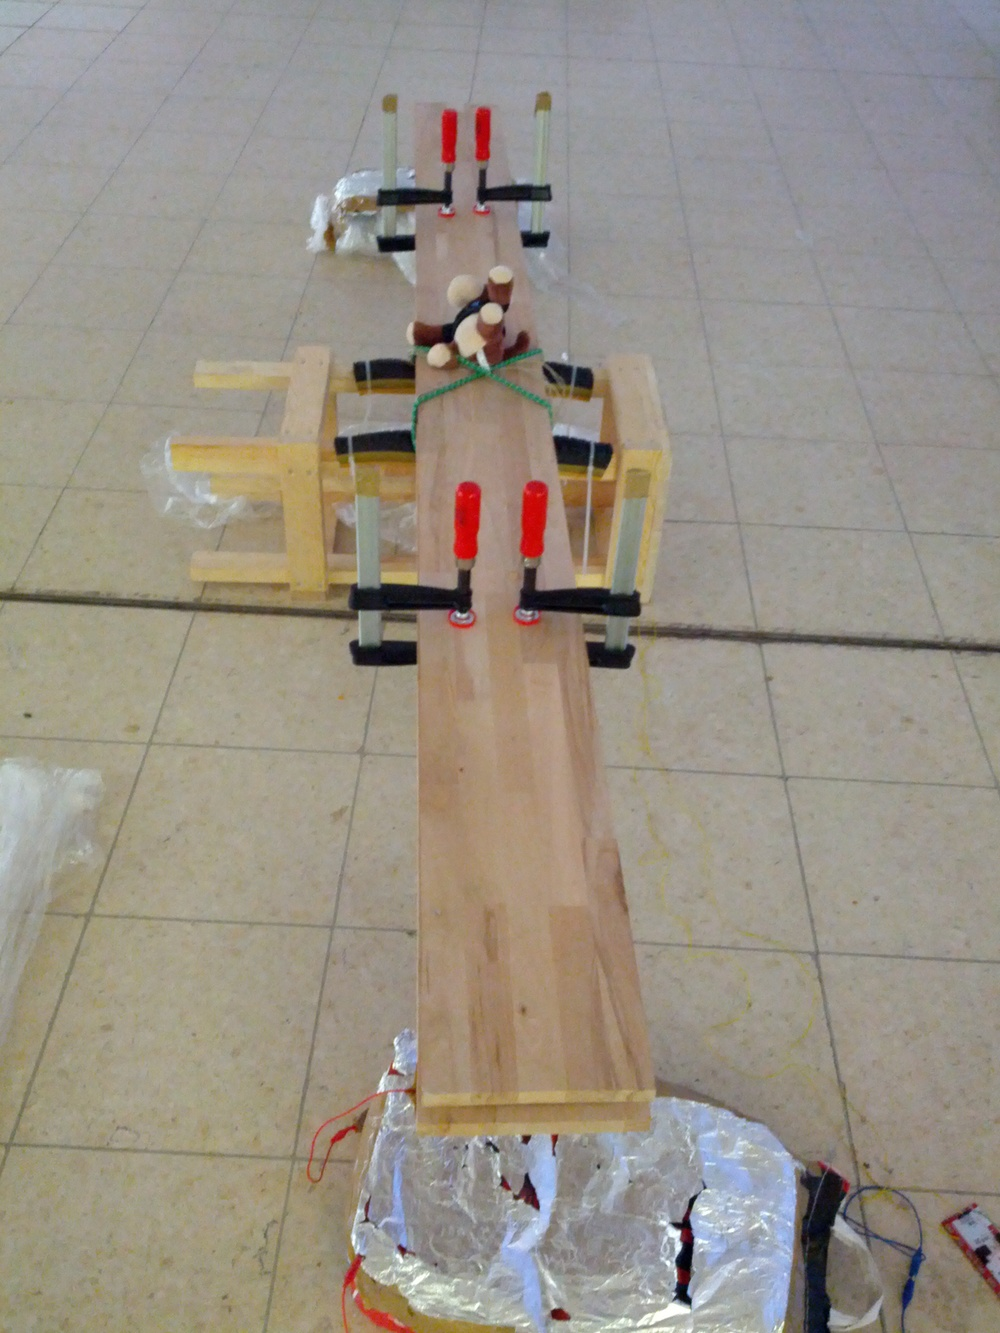 Musical teeter totter connected to makey makey